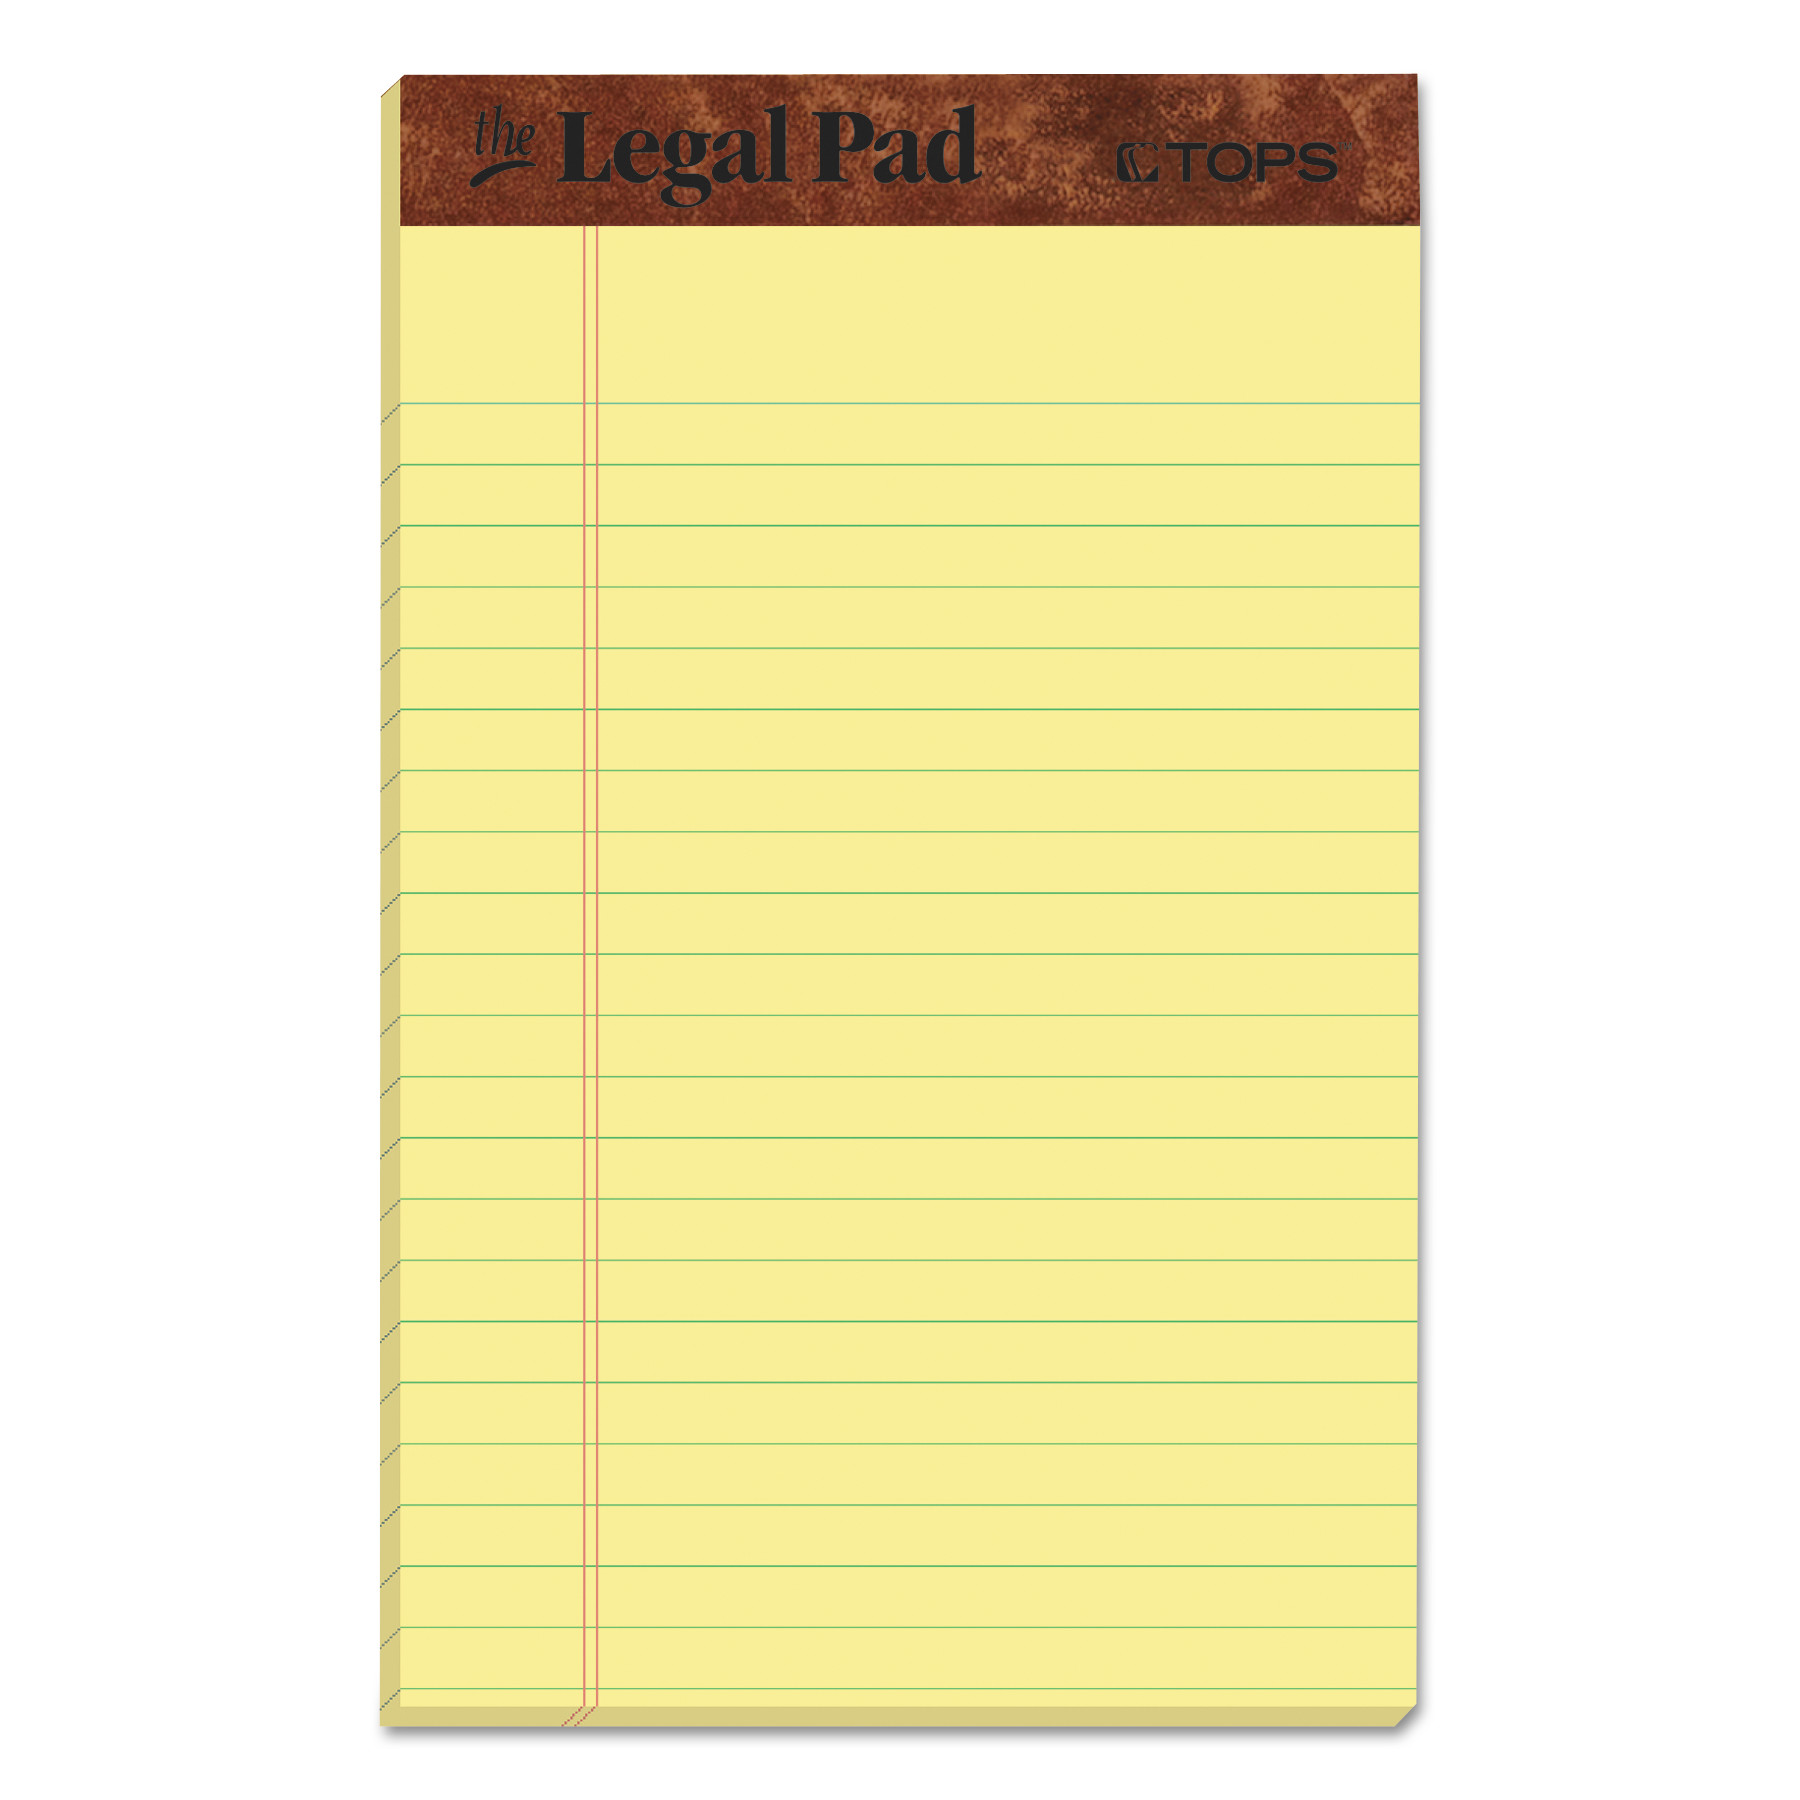 """TOPS """"The Legal Pad"""" Perforated Pads, Narrow Rule, 36 x 36, Canary, 360  Sheets, Dozen"""